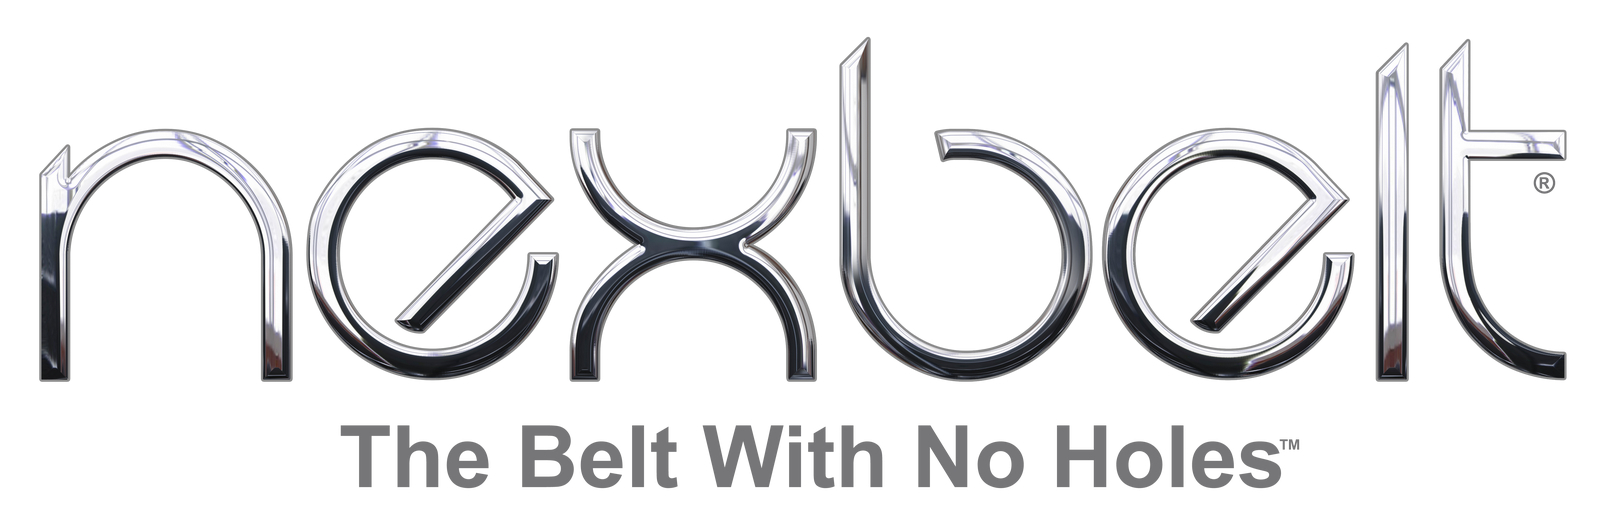 Nexbelt-Chrome-Logo-W-Reg SMALL (2).png